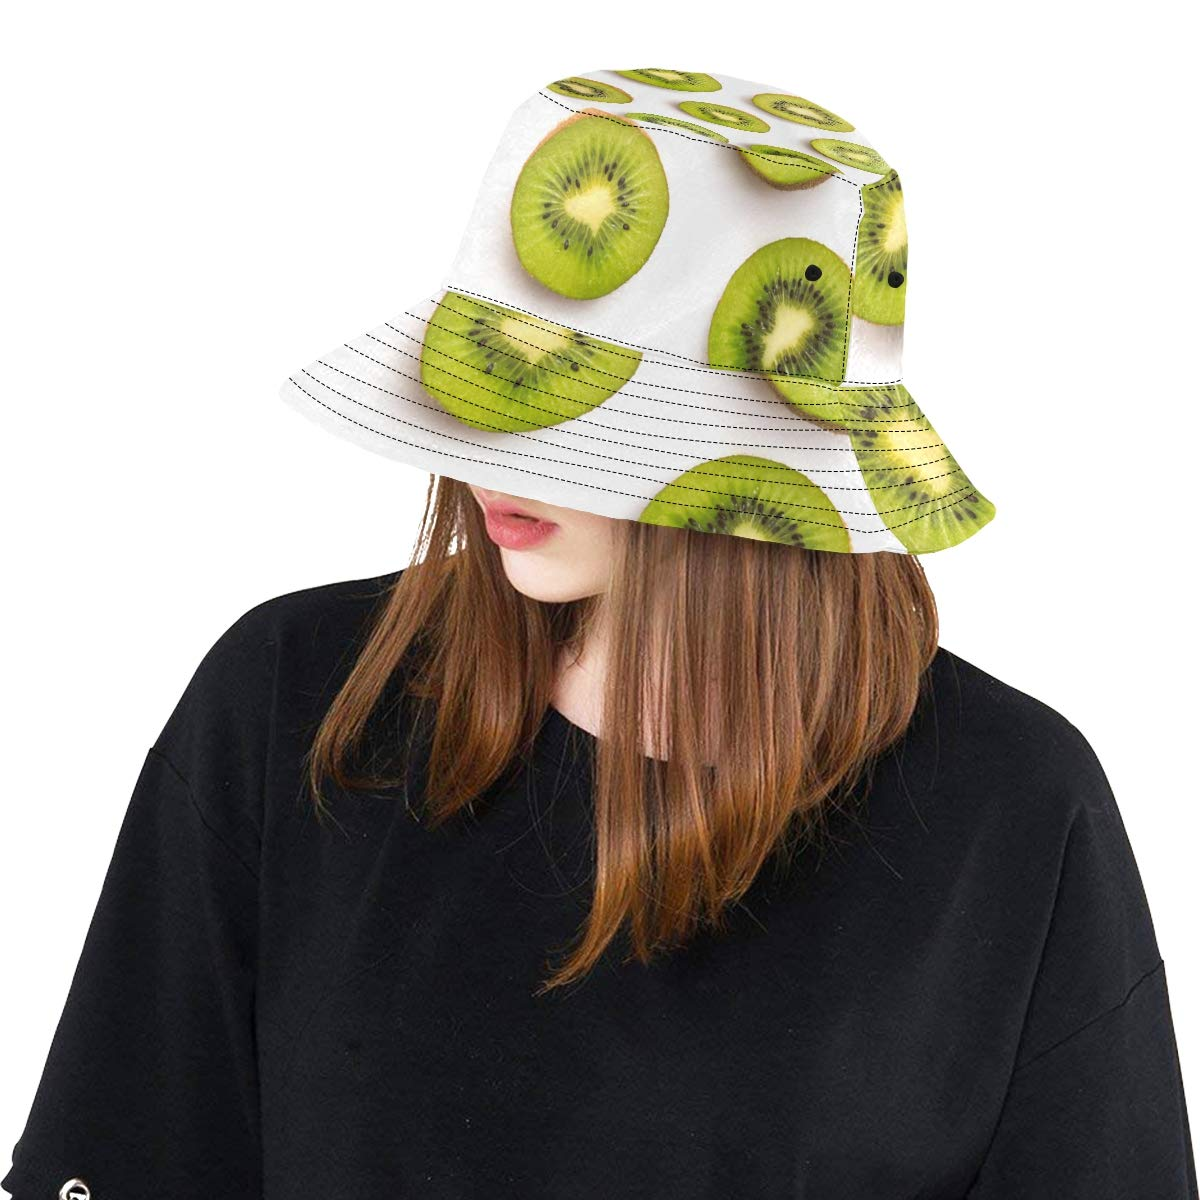 Green Fruit Kiwi Slice New Summer Unisex Cotton Fashion Fishing Sun Bucket Hats for Kid Teens Women and Men with Customize Top Packable Fisherman Cap for Outdoor Travel